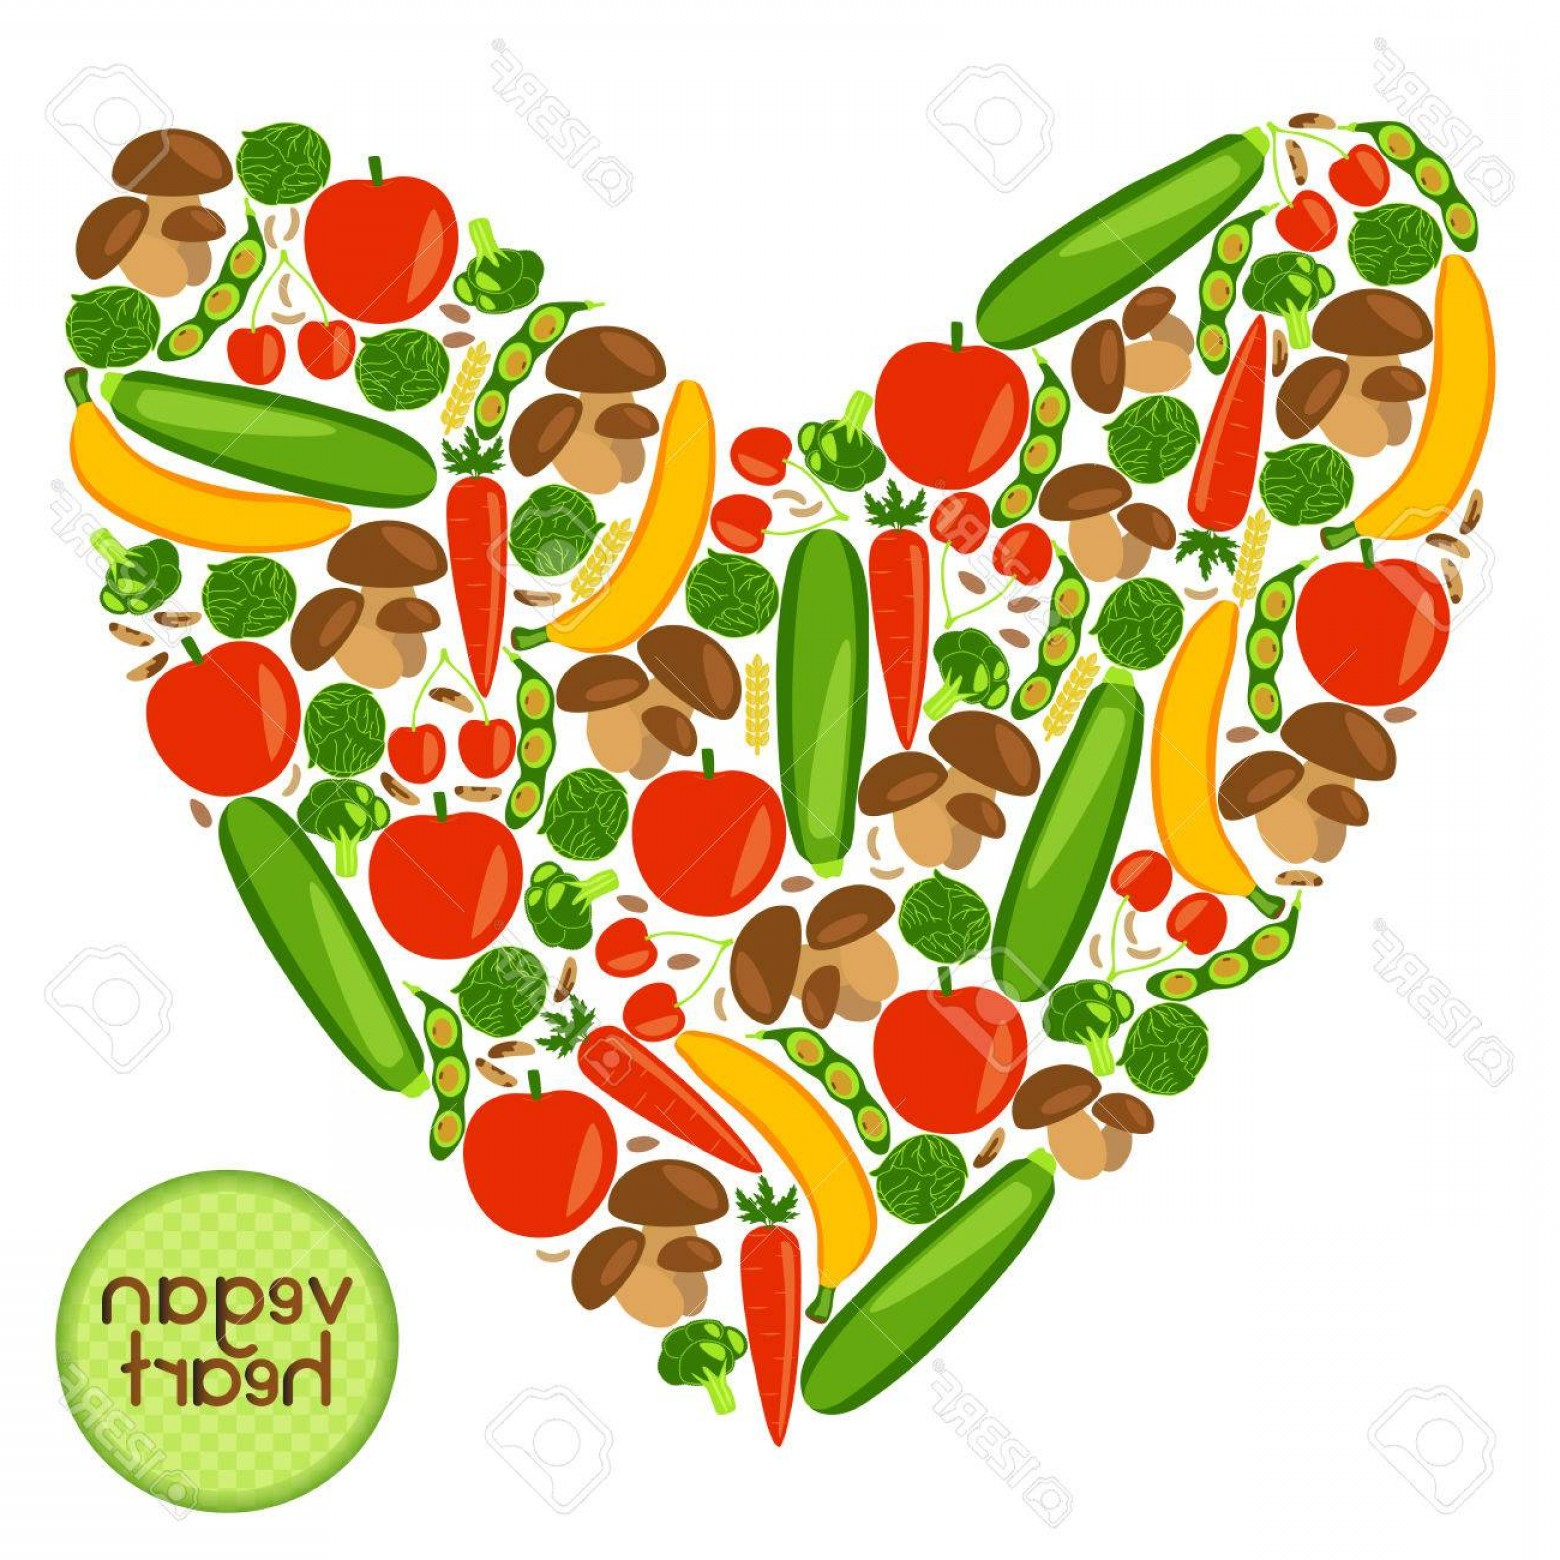 Vegan Heart Vectors: Photostock Vector Vegan Heart Beautifull Background With Fruits Vegetables Berries Mushrooms Wheat And Nuts Vector Col